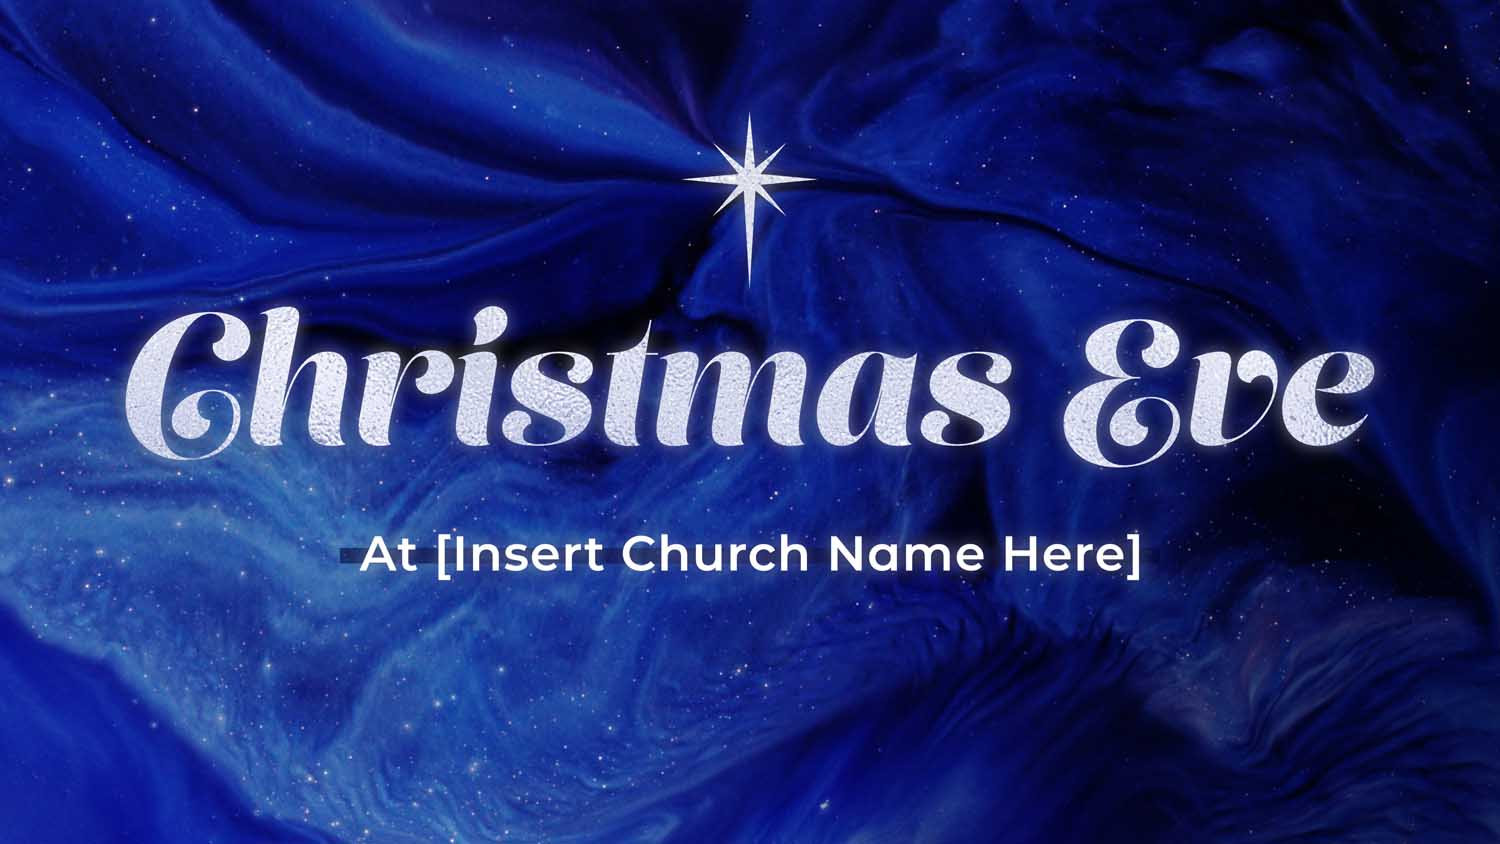 Christmas Pictures Free.Christmas Cmg Church Motion Graphics